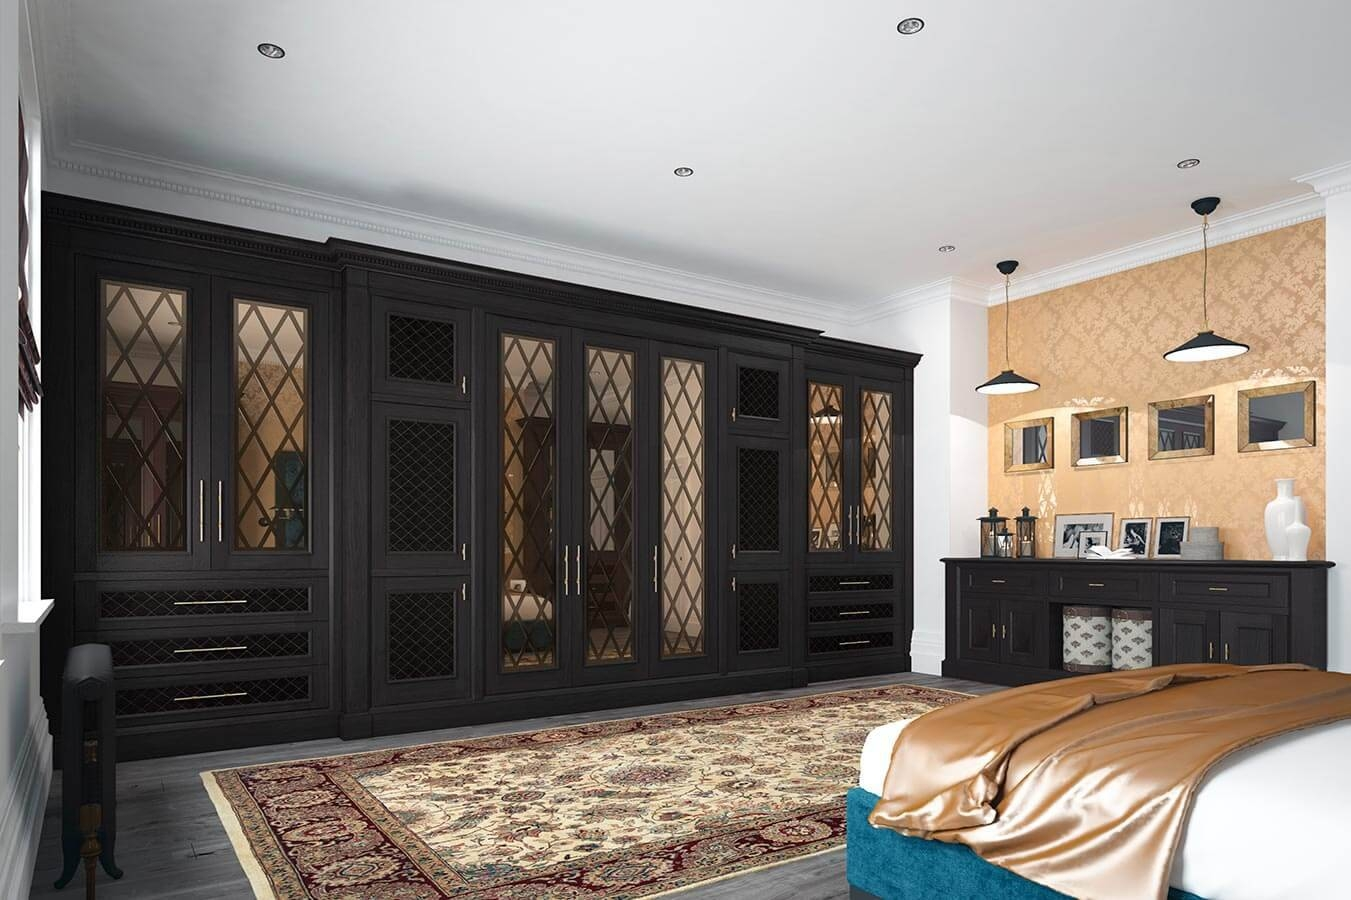 Fitted Bedrooms | Wardrobes, Beds And Chests Of Drawers inside Dark Wardrobes (Image 10 of 30)